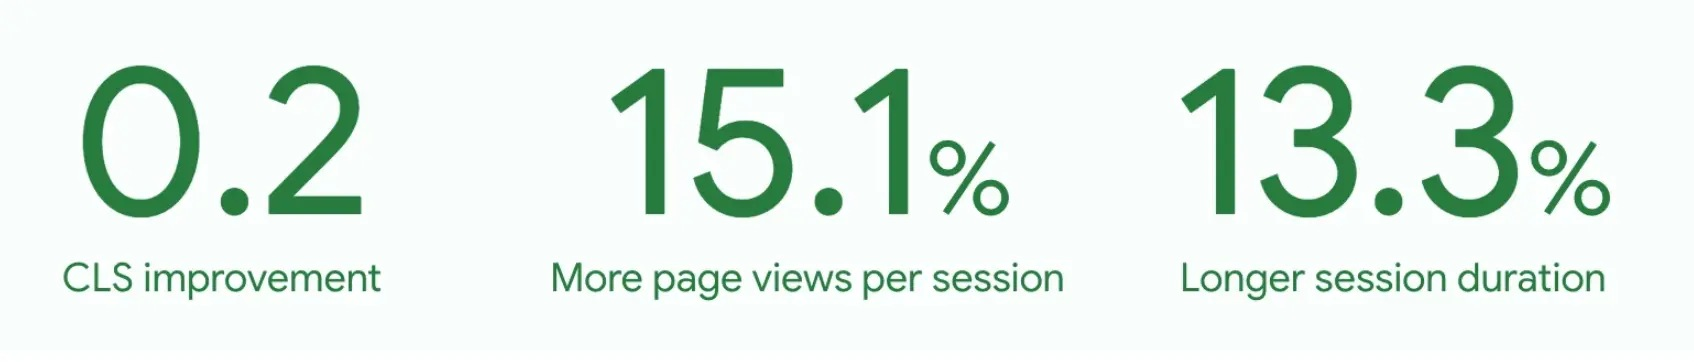 Diagram - Reducing layout shift increases page views per session